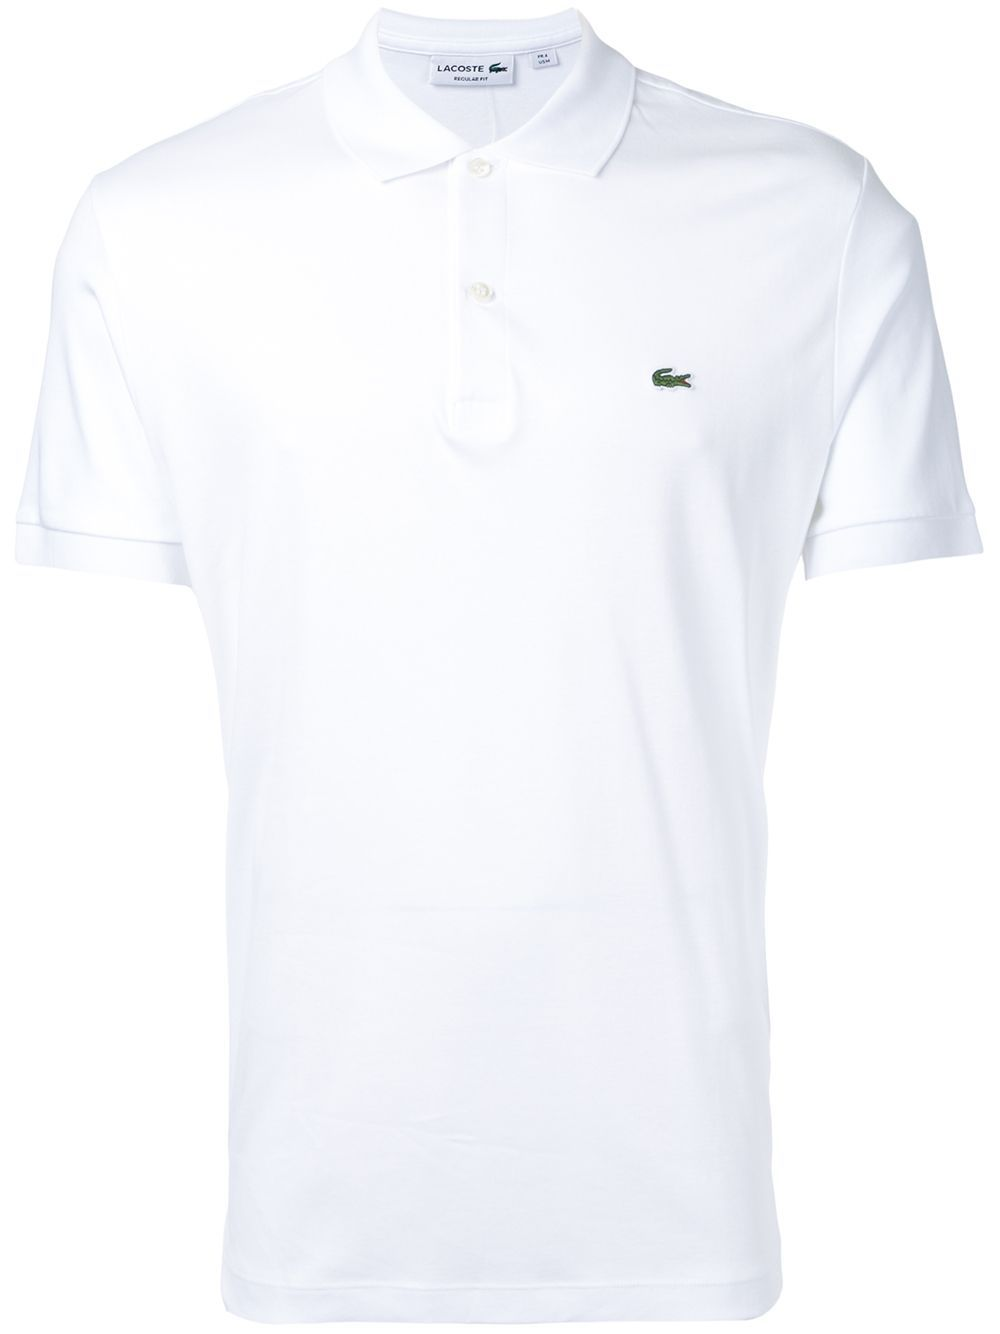 White cotton logo patch polo shirt from Lacoste.